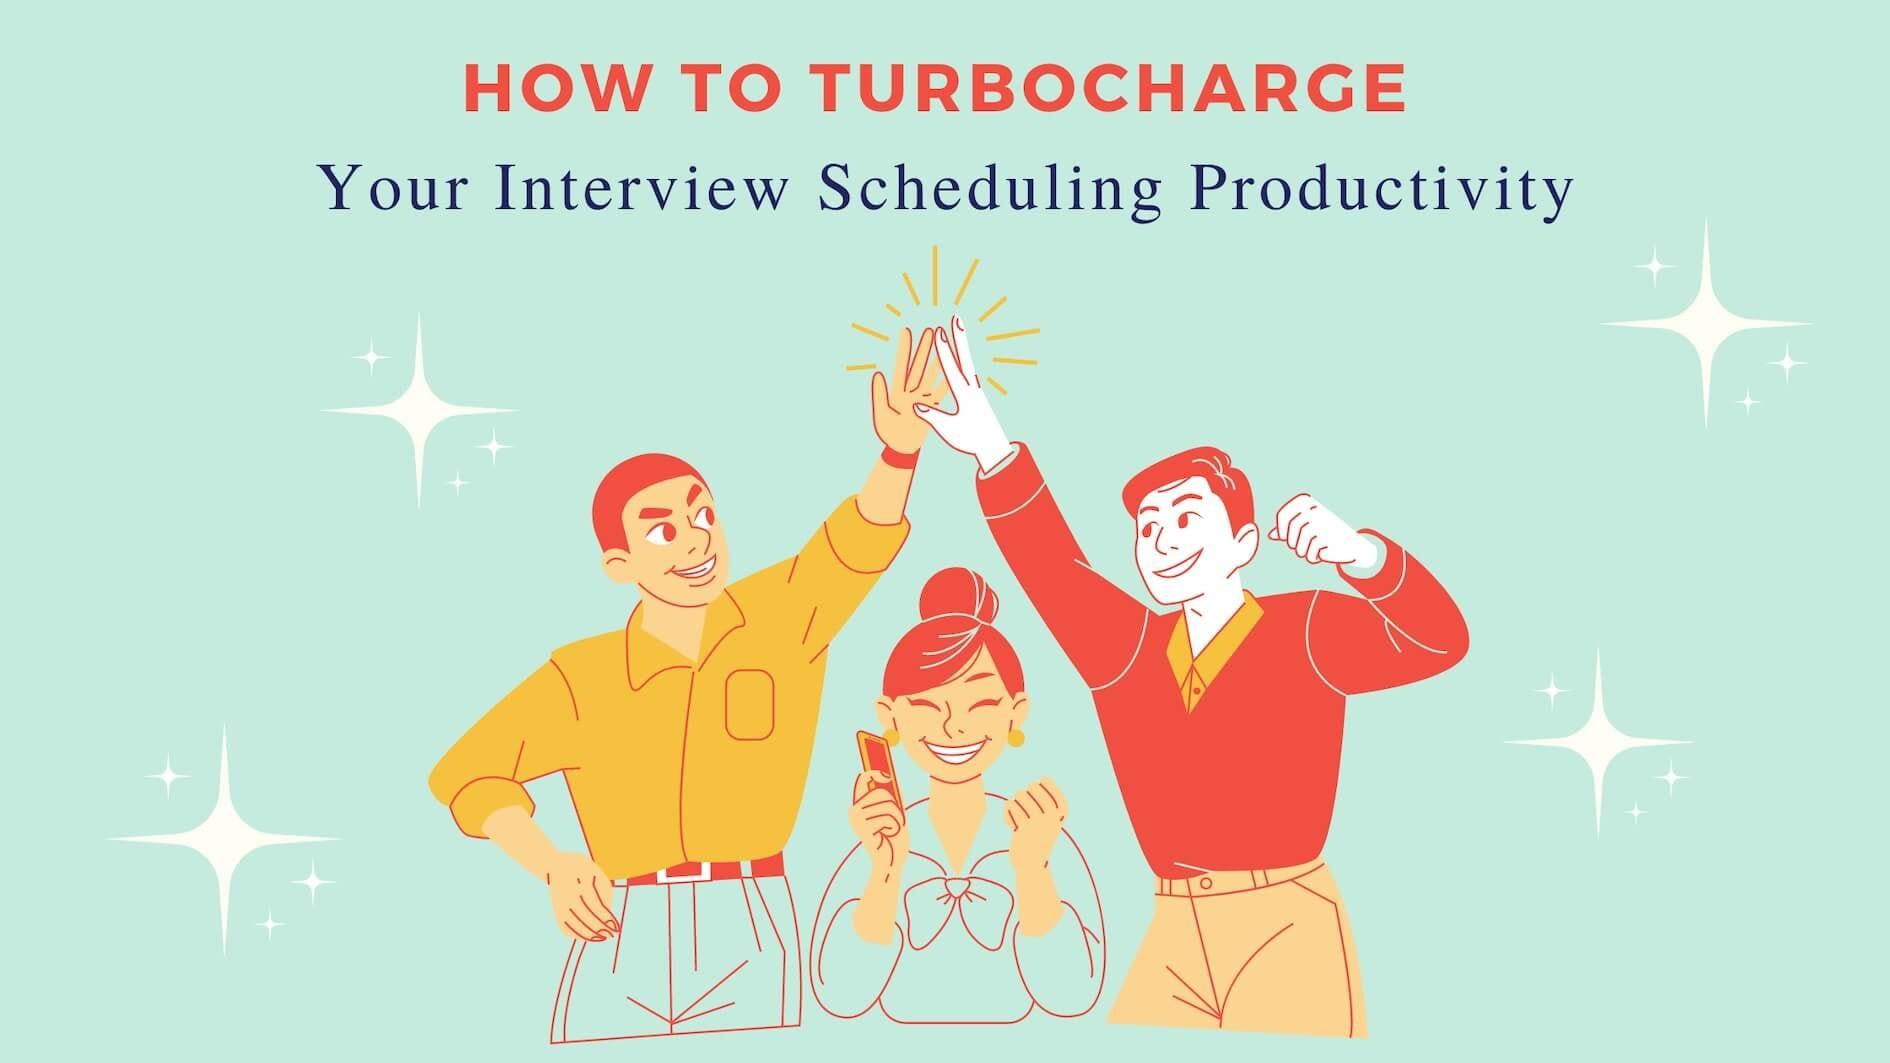 How to Turbocharge Your Interview Scheduling Productivity